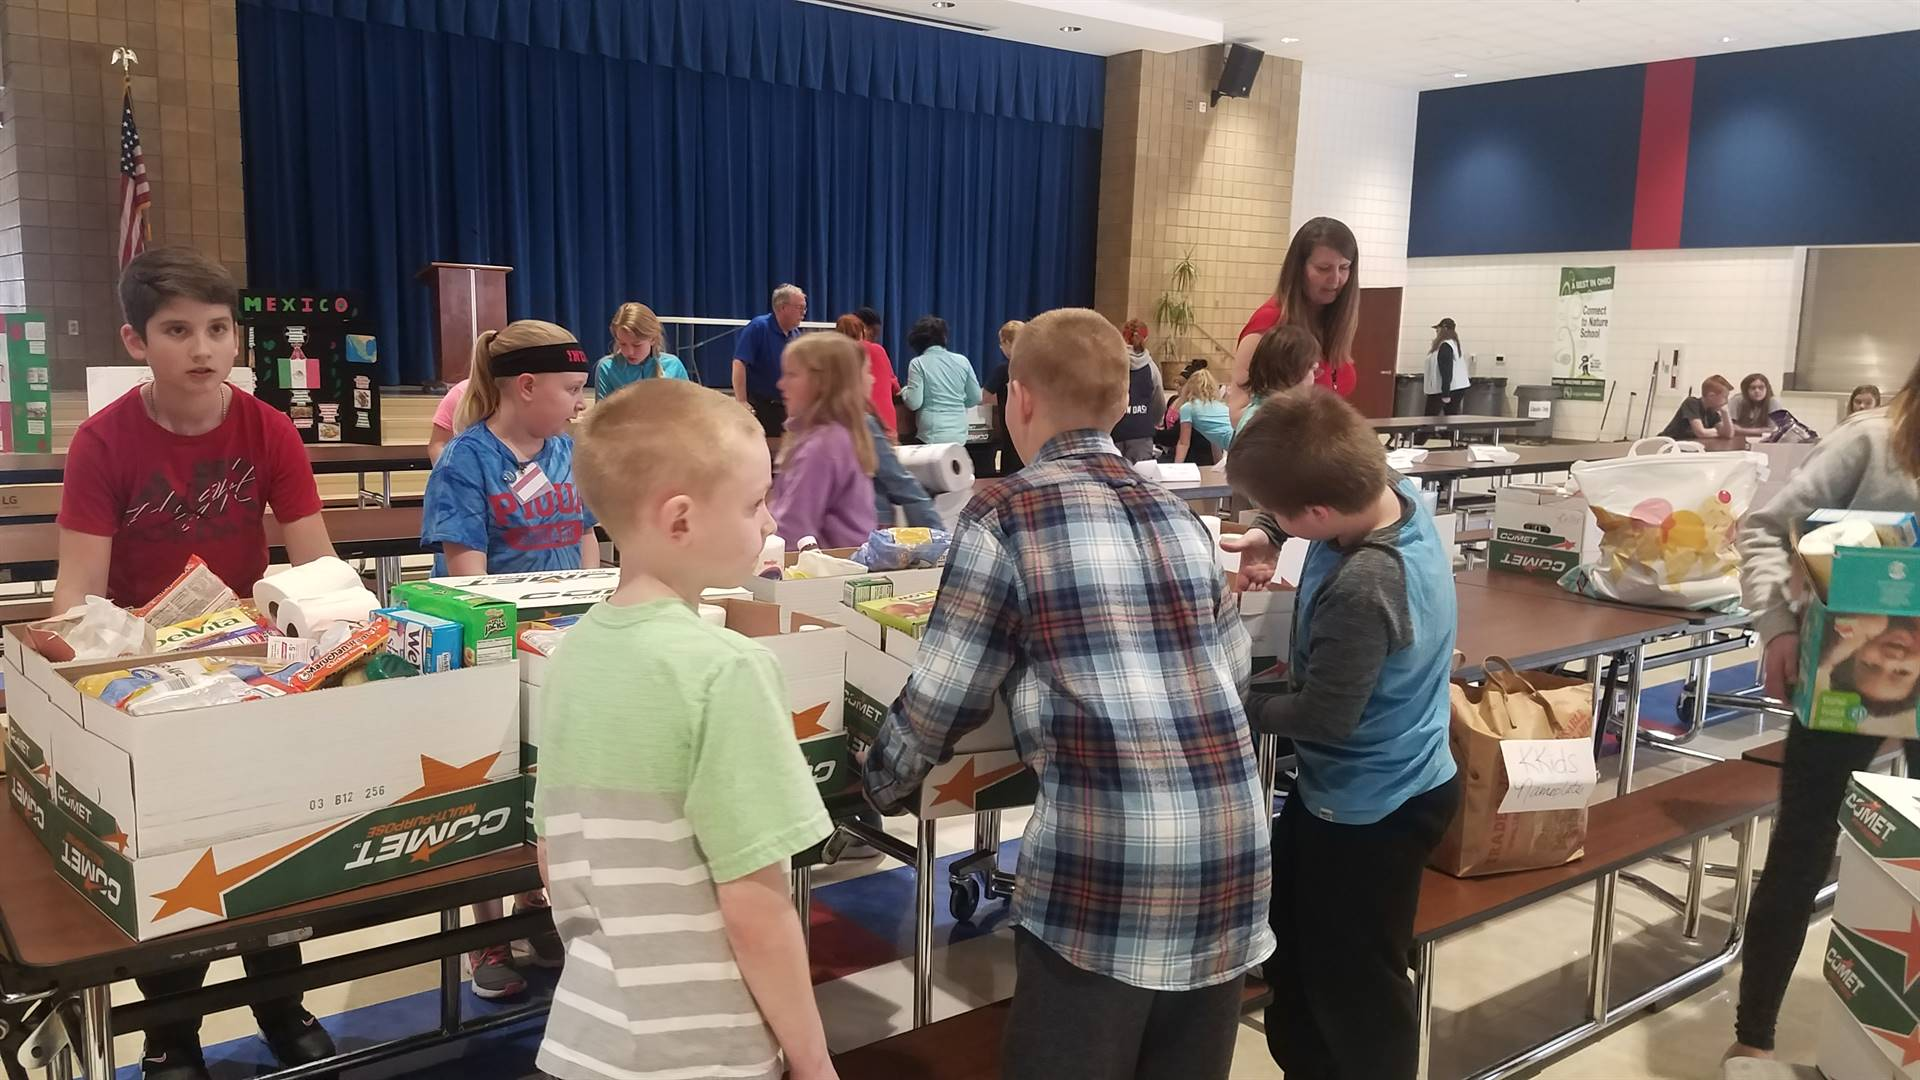 KKids sorting canned foods for donations